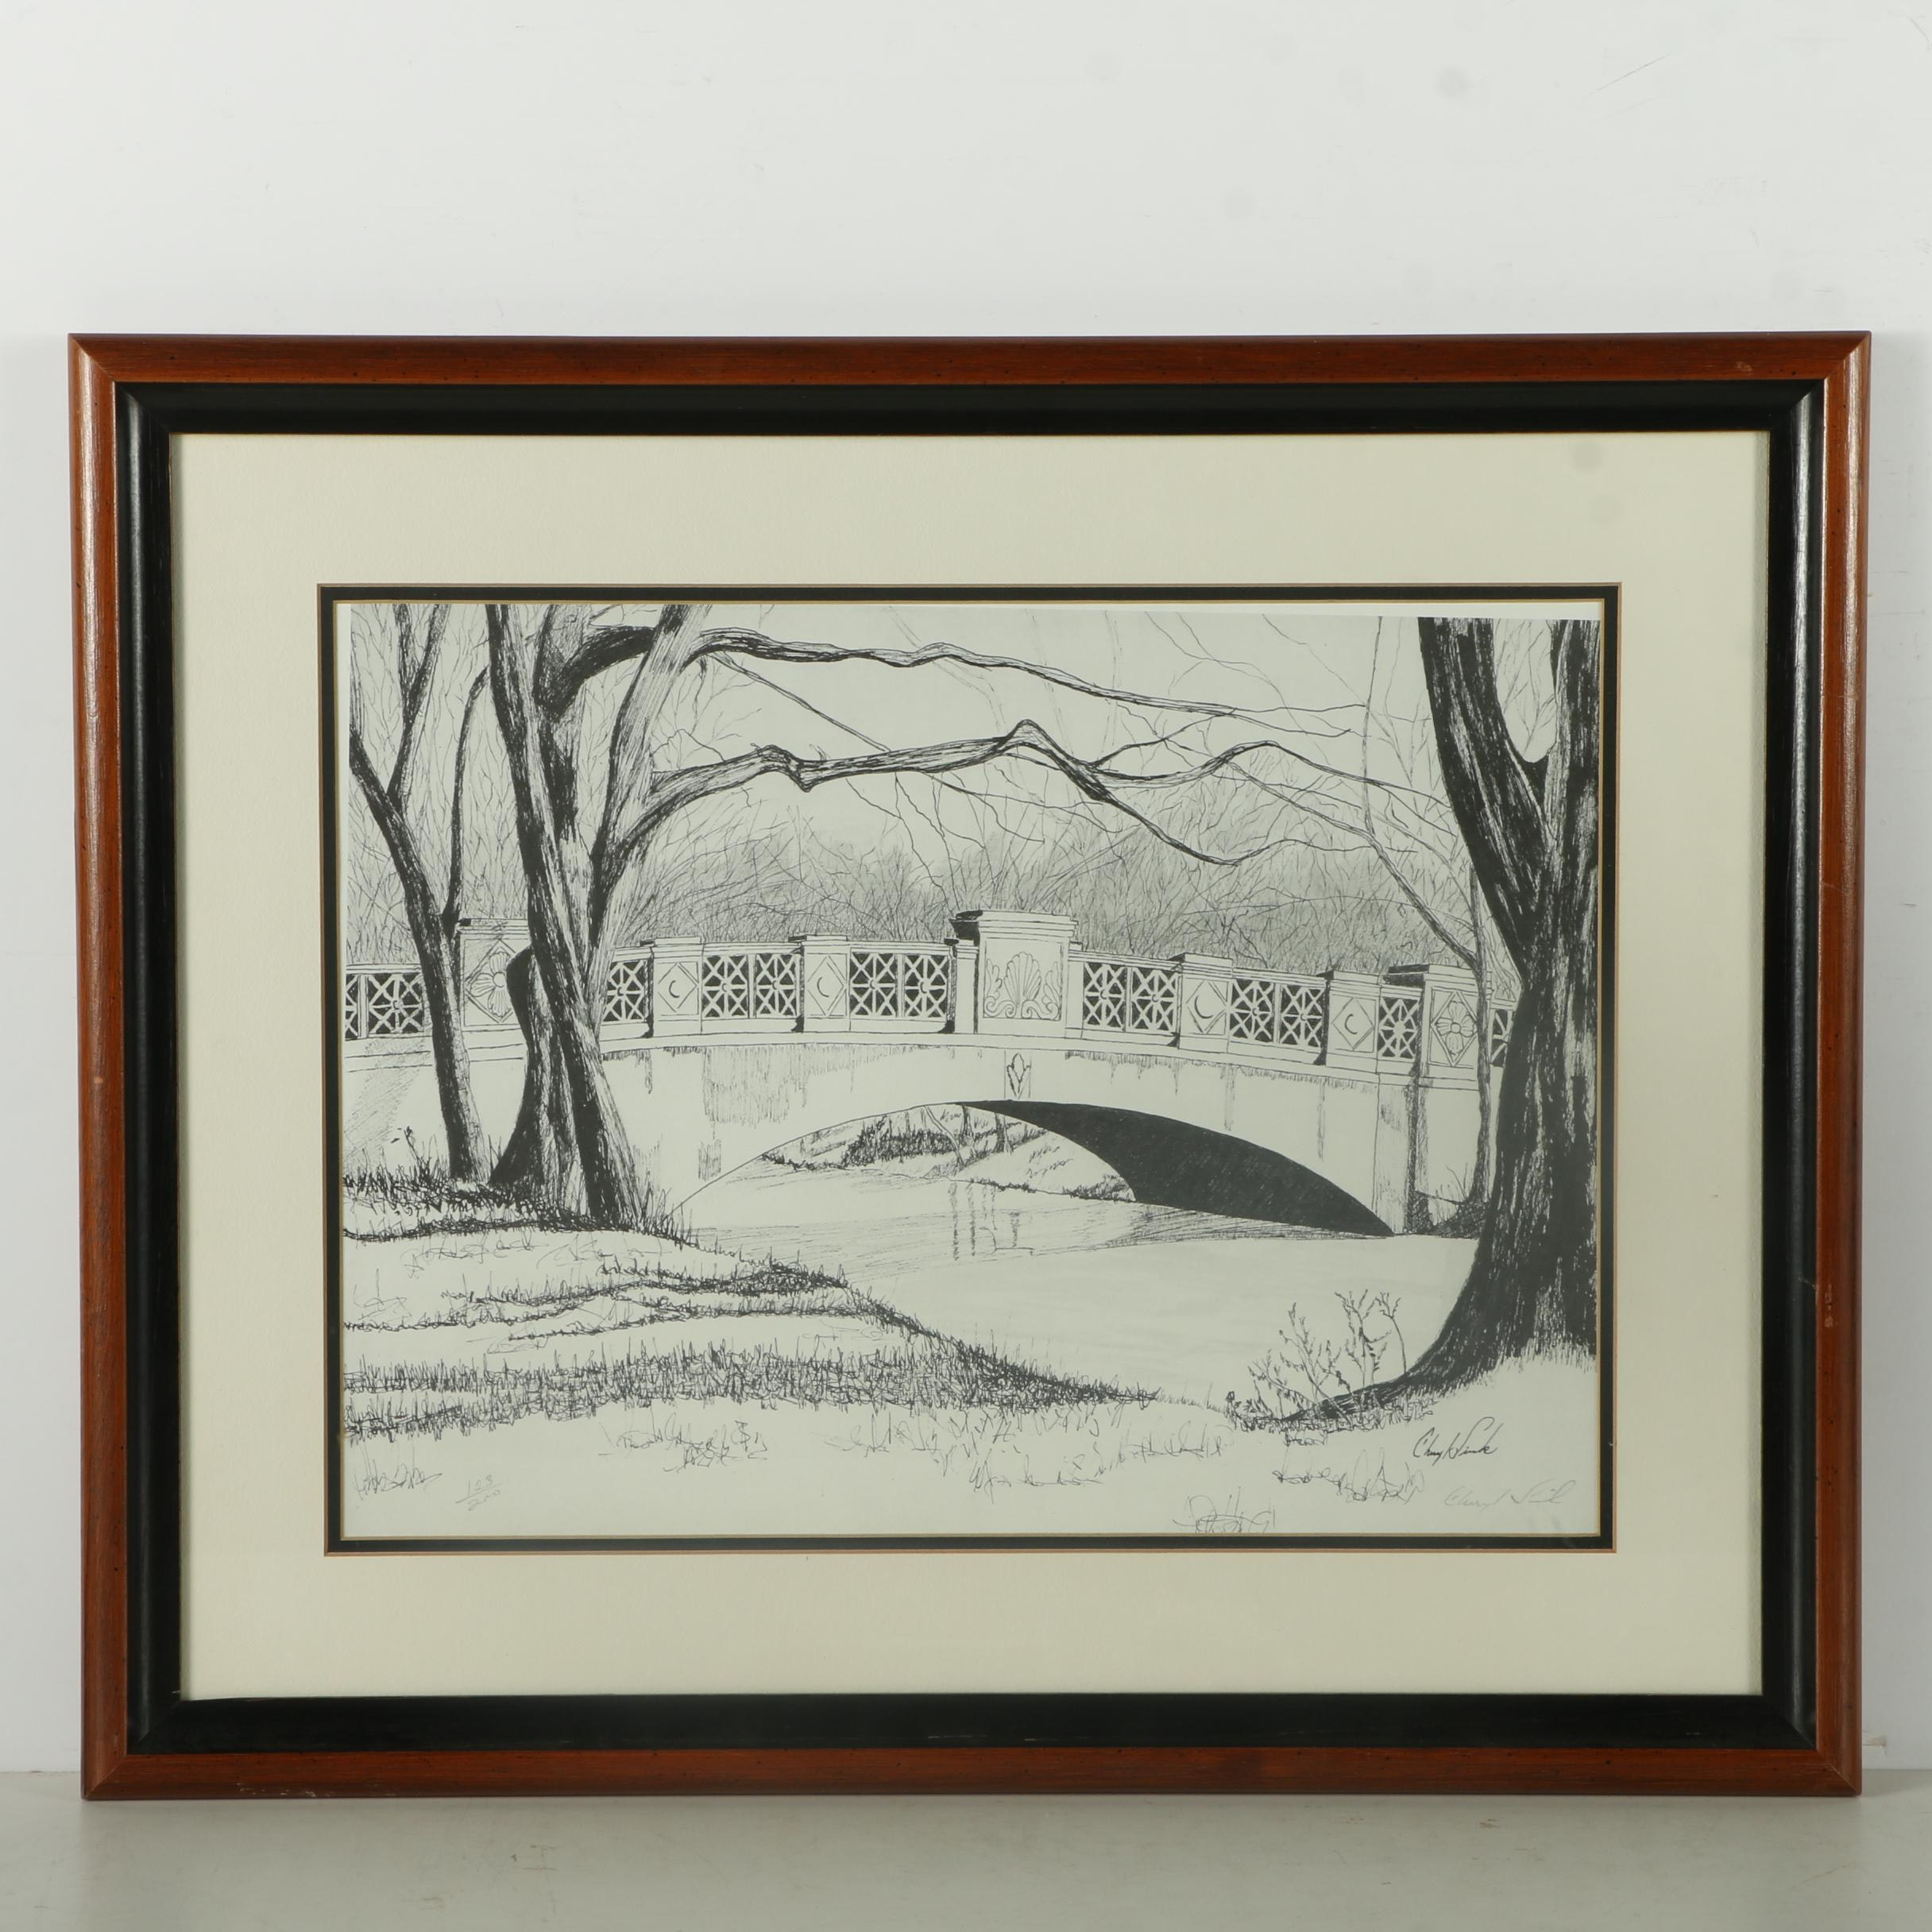 Cheryl Sink Limited Edition Halftone Print After Illustration of Park Bridge